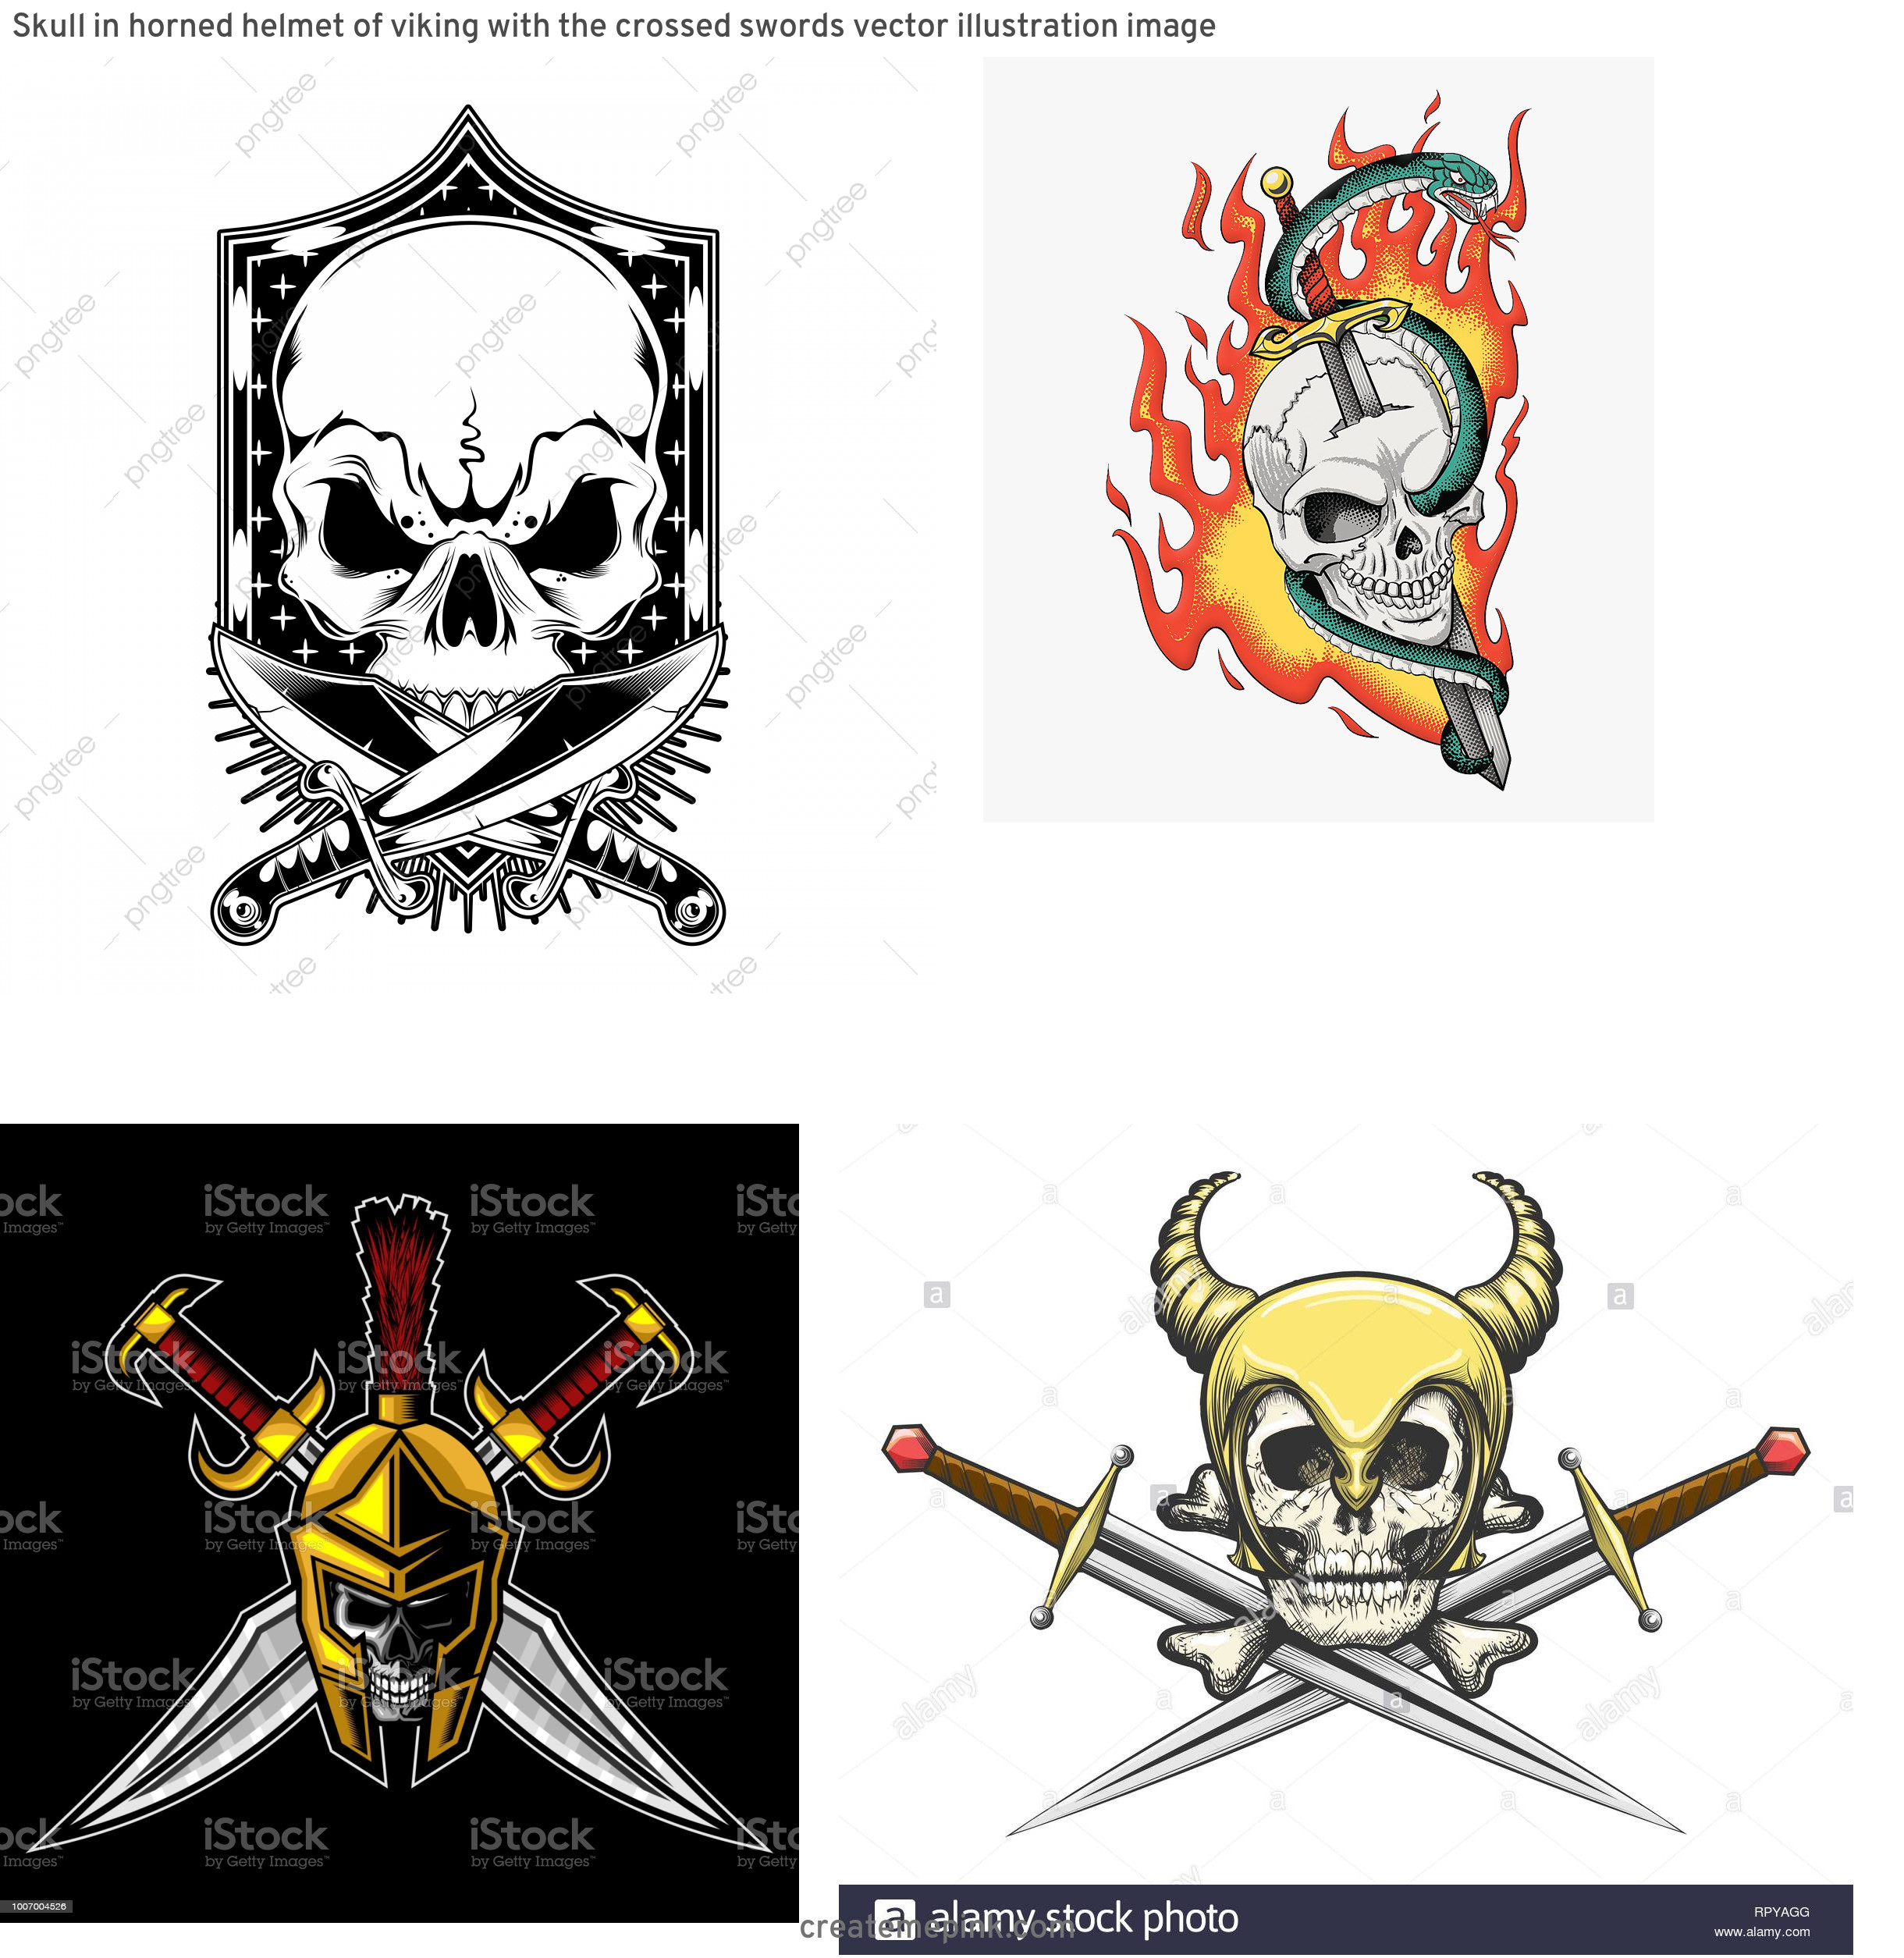 Skull Sword Vector: Skull In Horned Helmet Of Viking With The Crossed Swords Vector Illustration Image